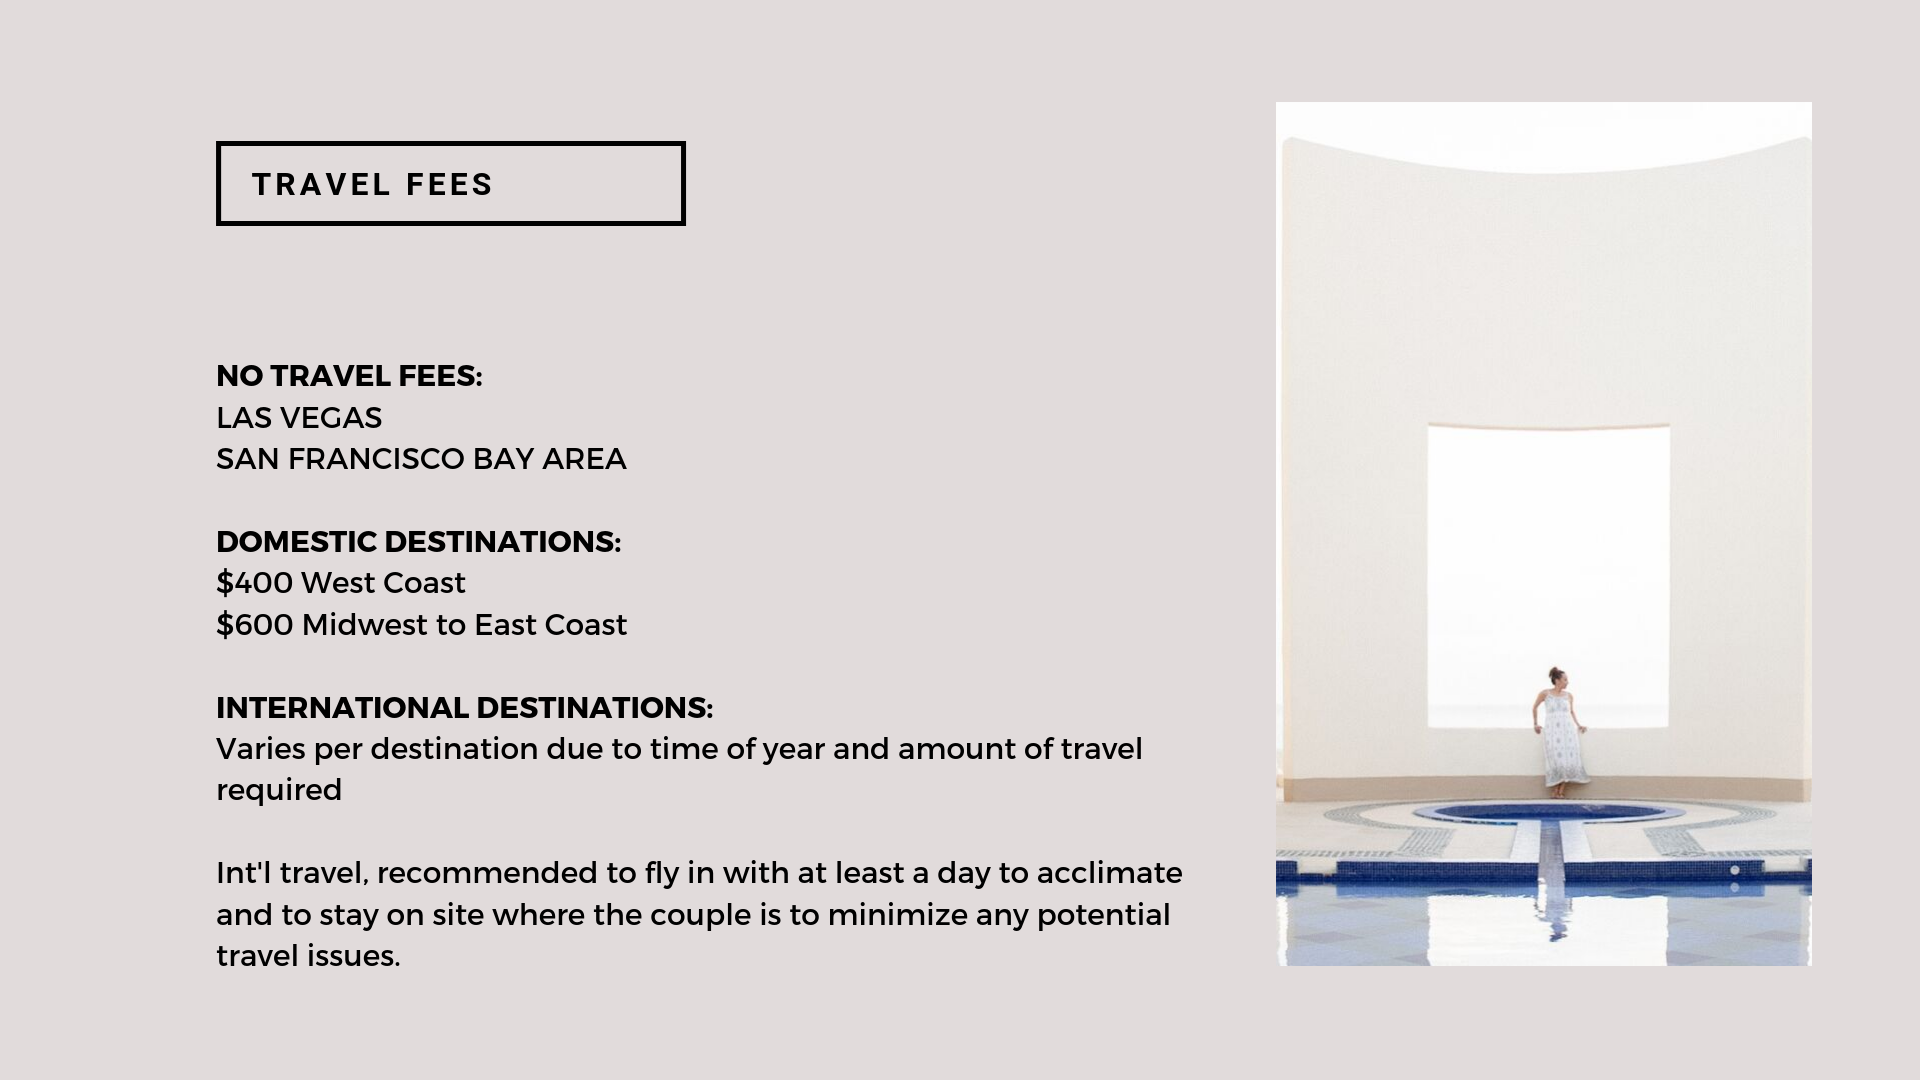 7 TRAVEL FEES DESTINATION WEDDINGS.png